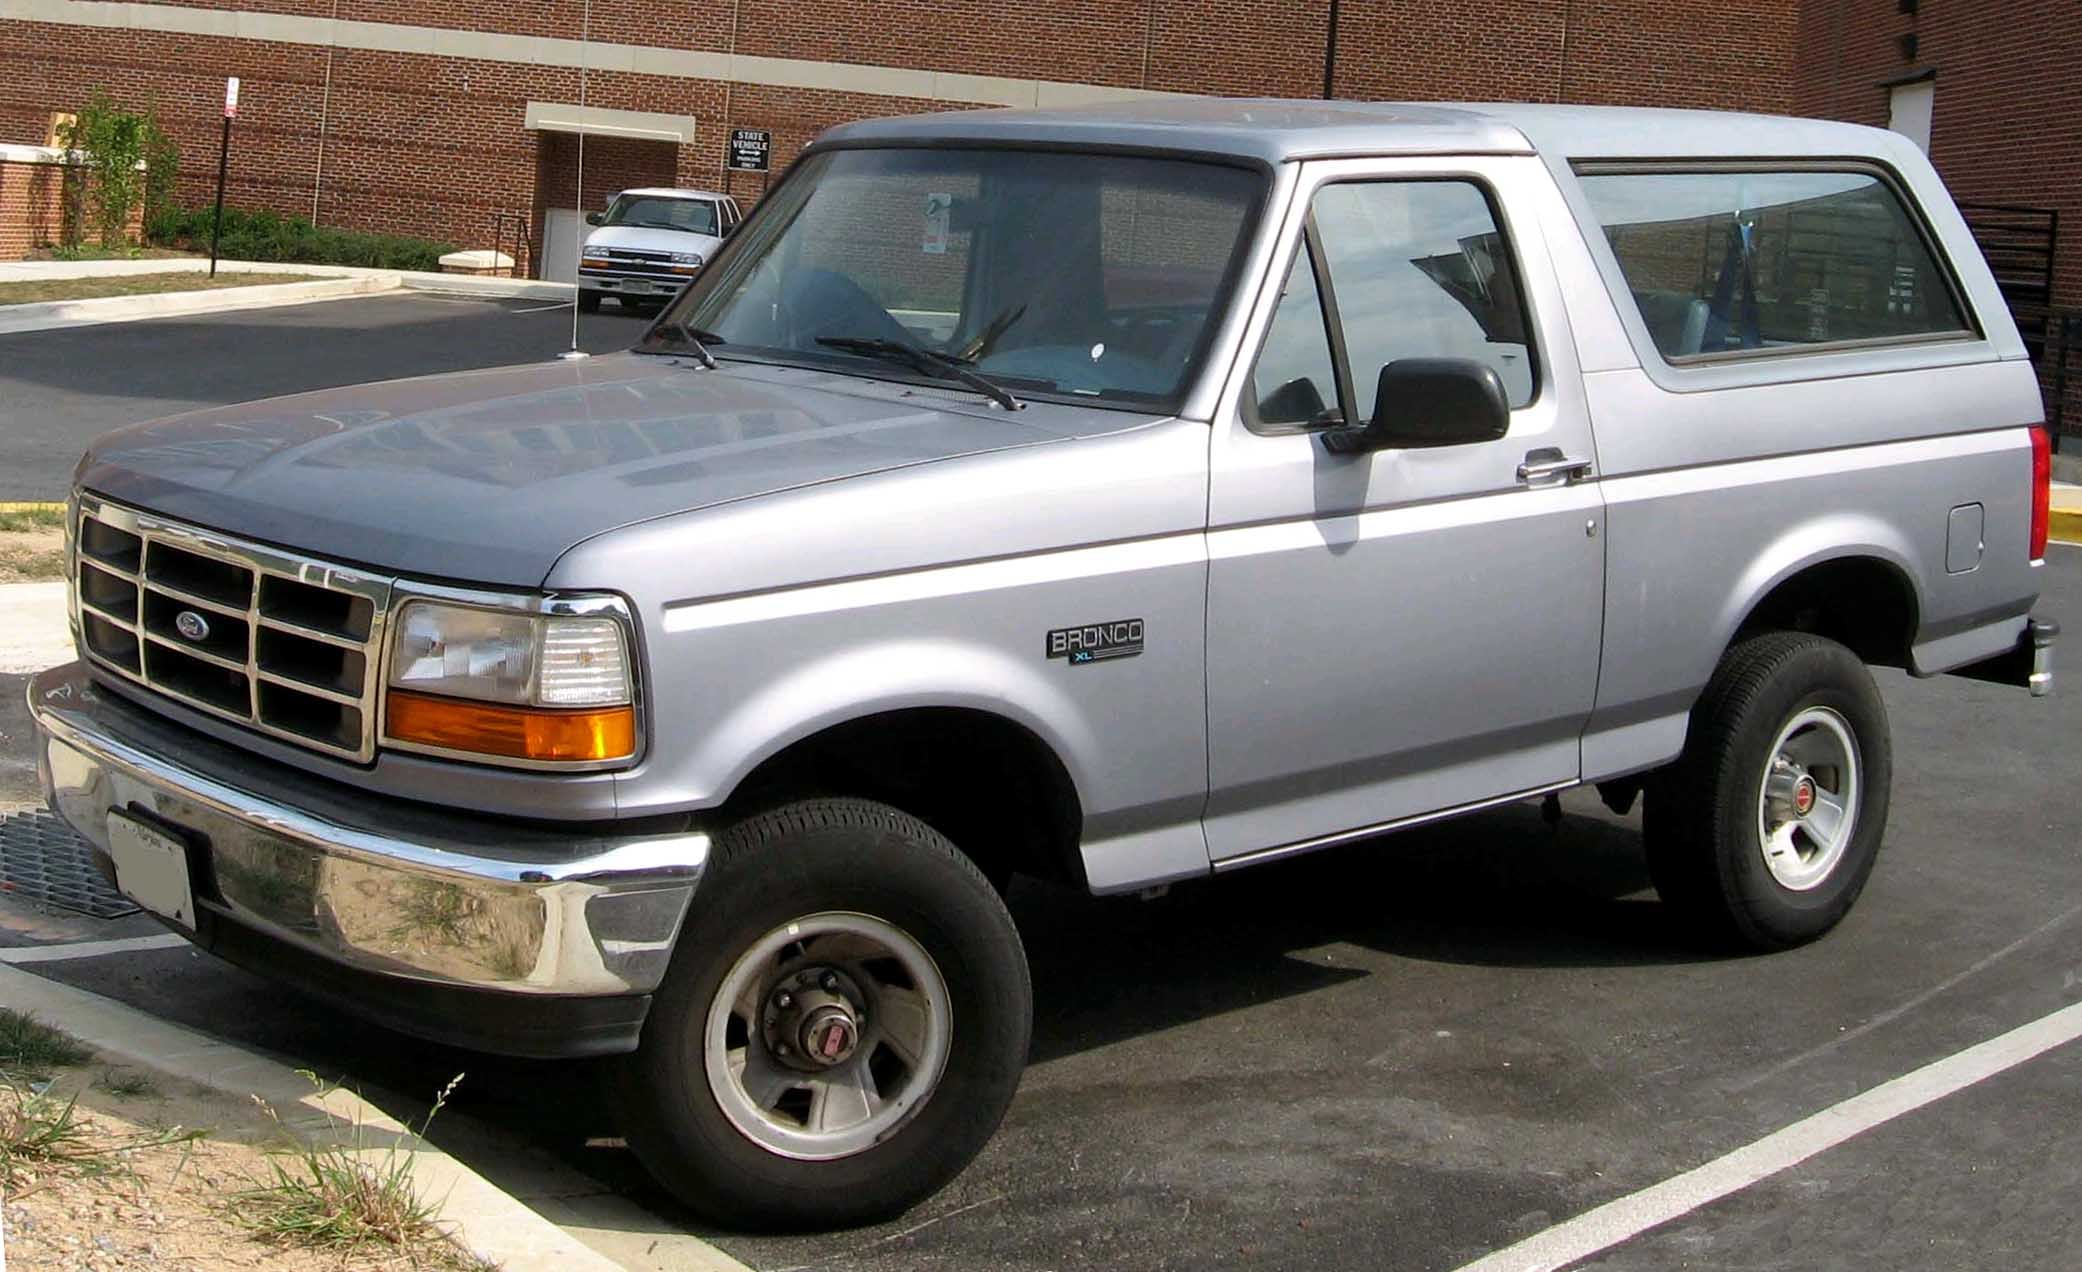 Ford Bronco #2